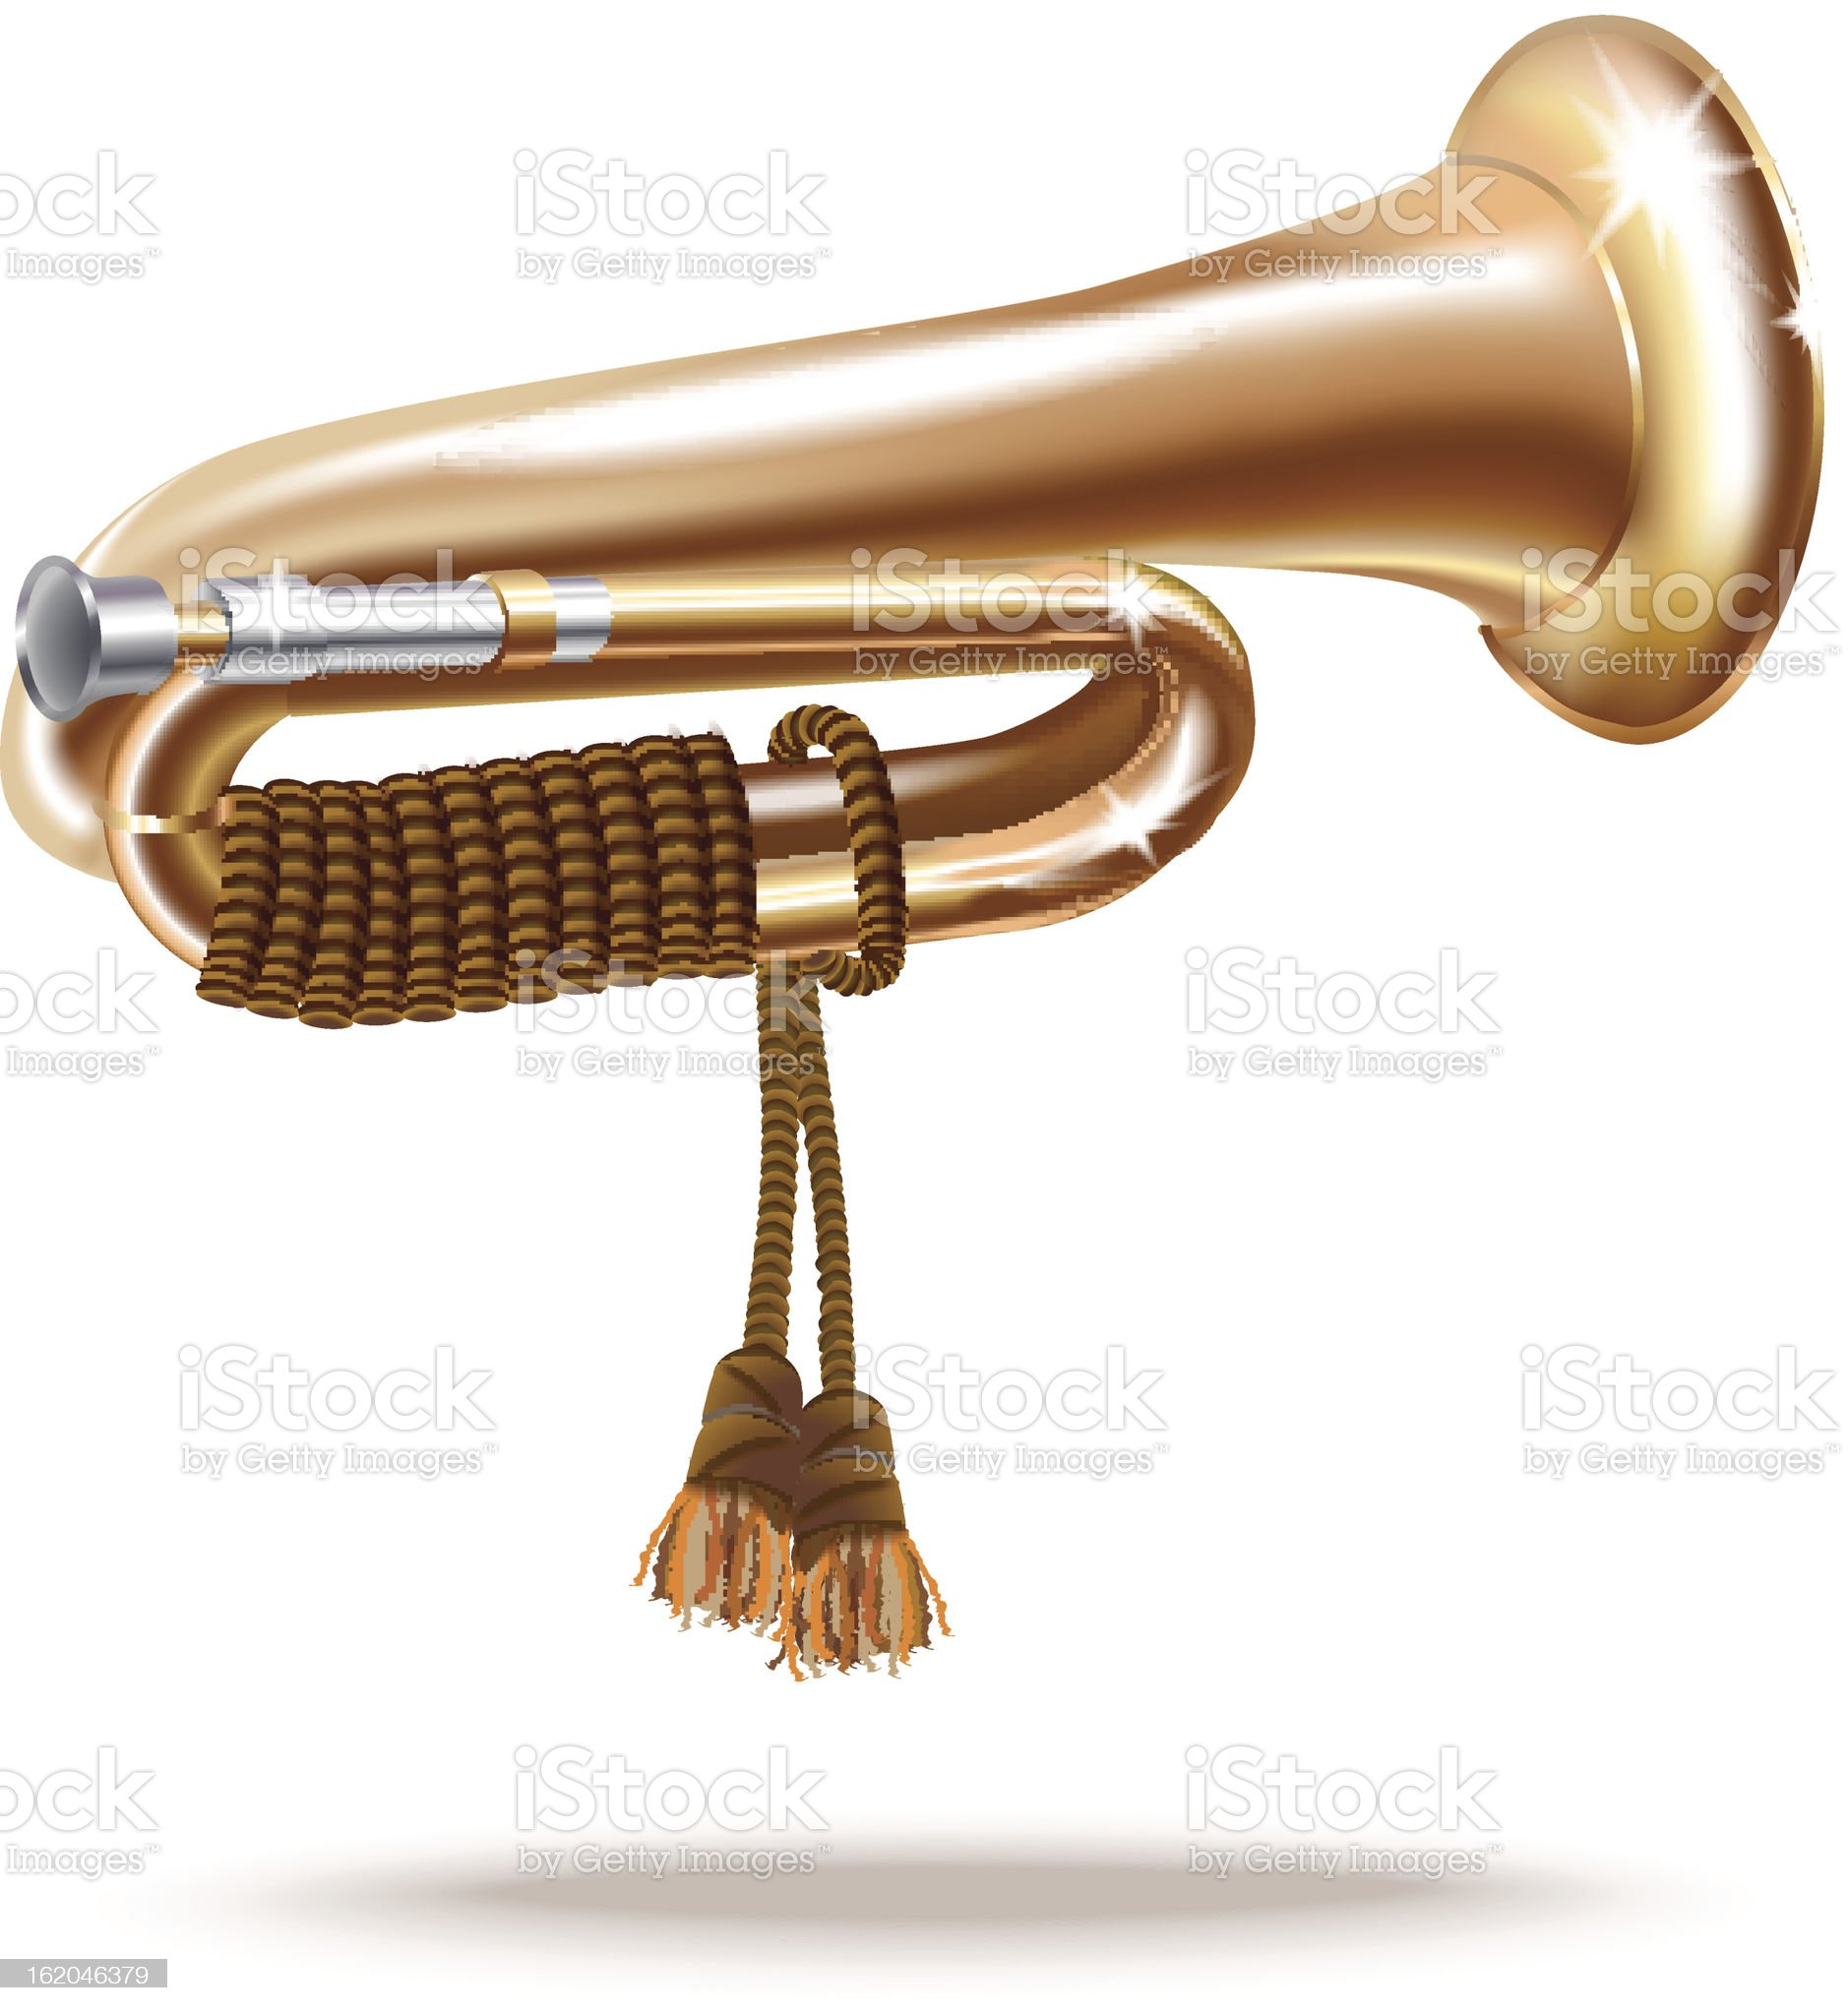 Classical bugle, isolated on white background royalty-free stock vector art